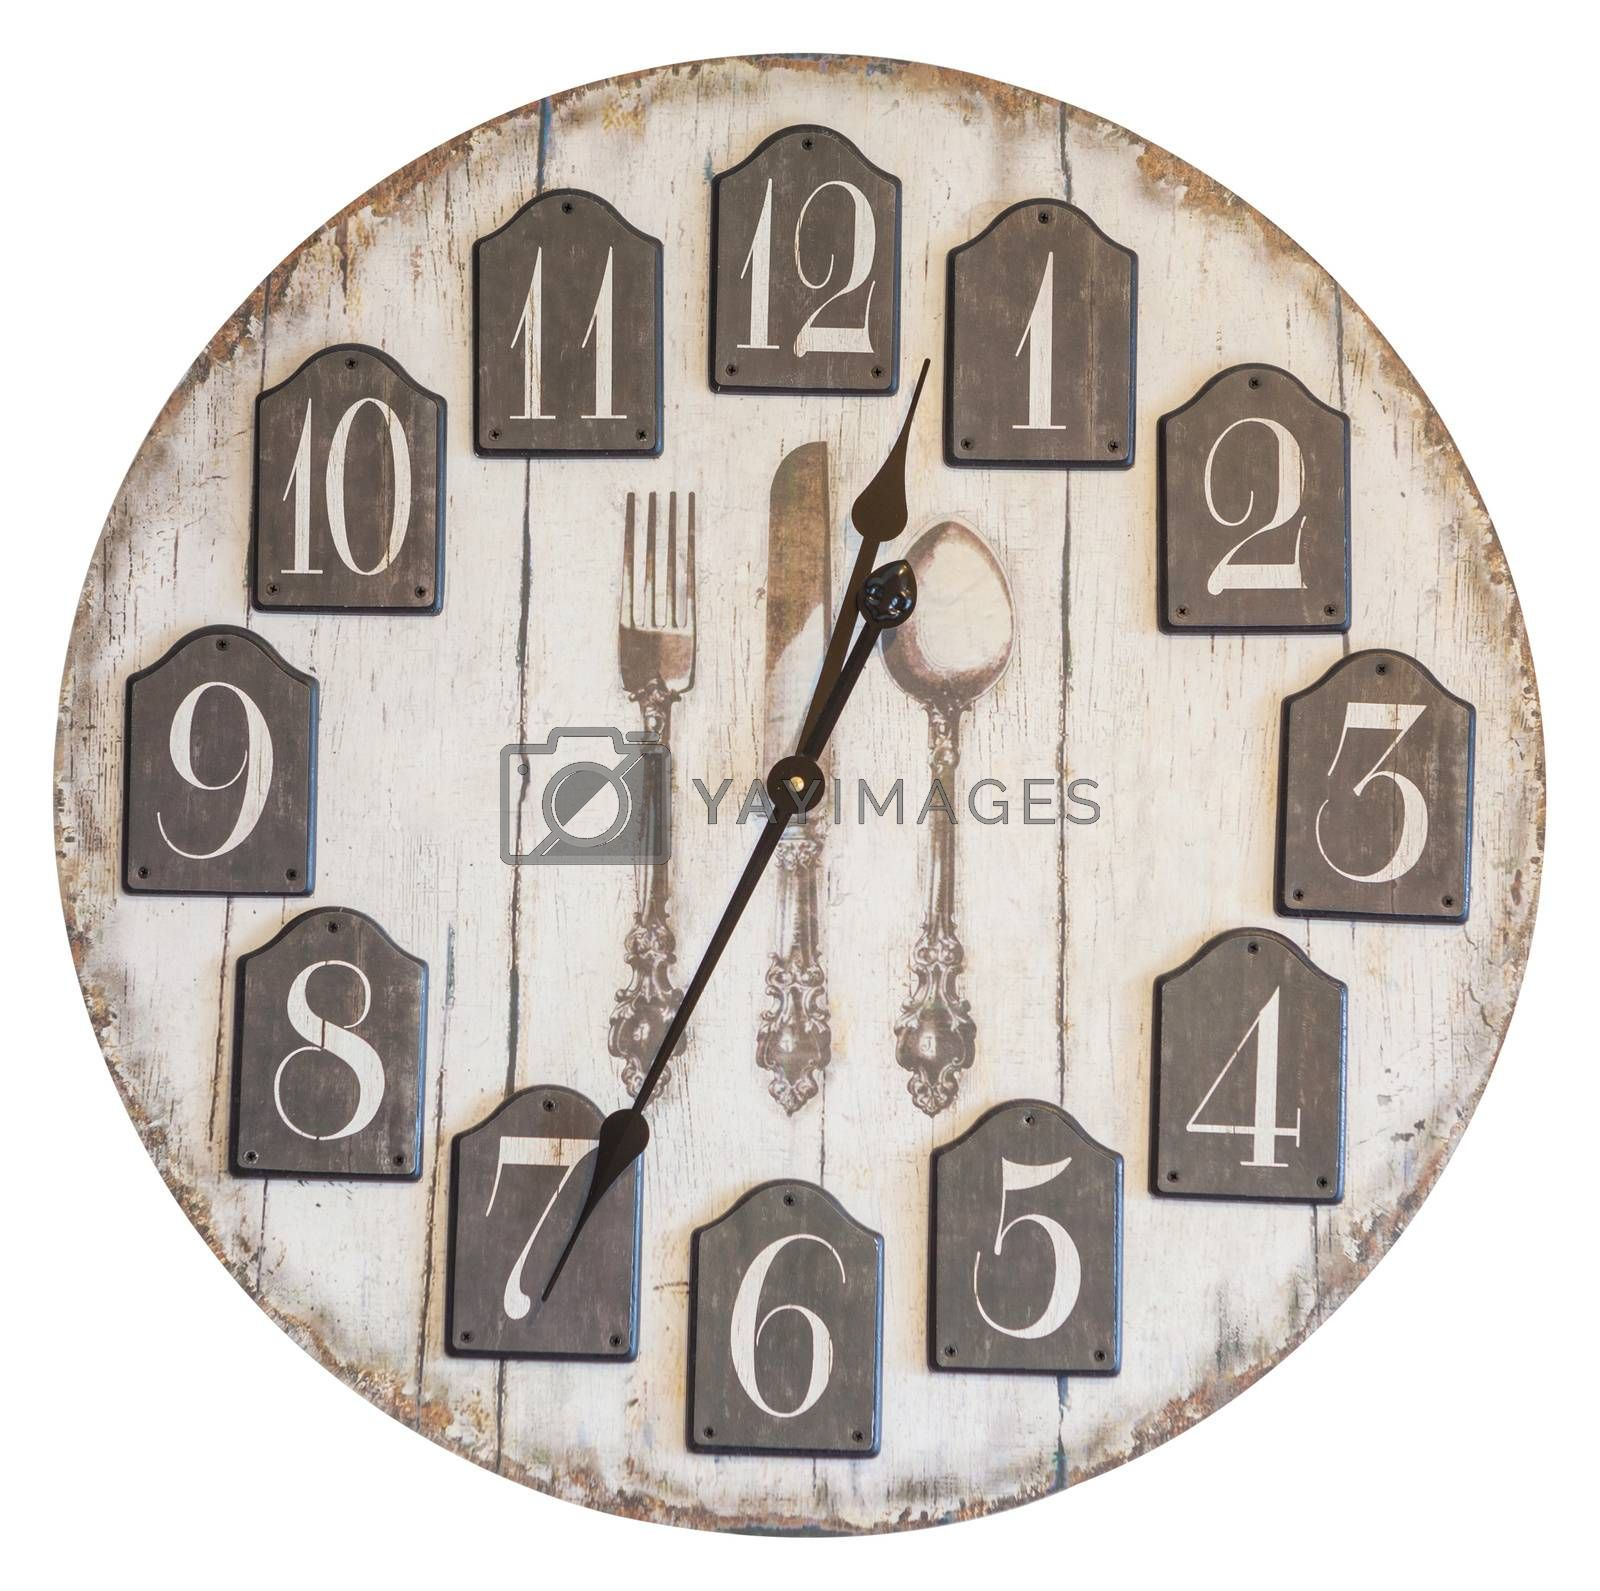 Retro vintage wall clock isolated on white background